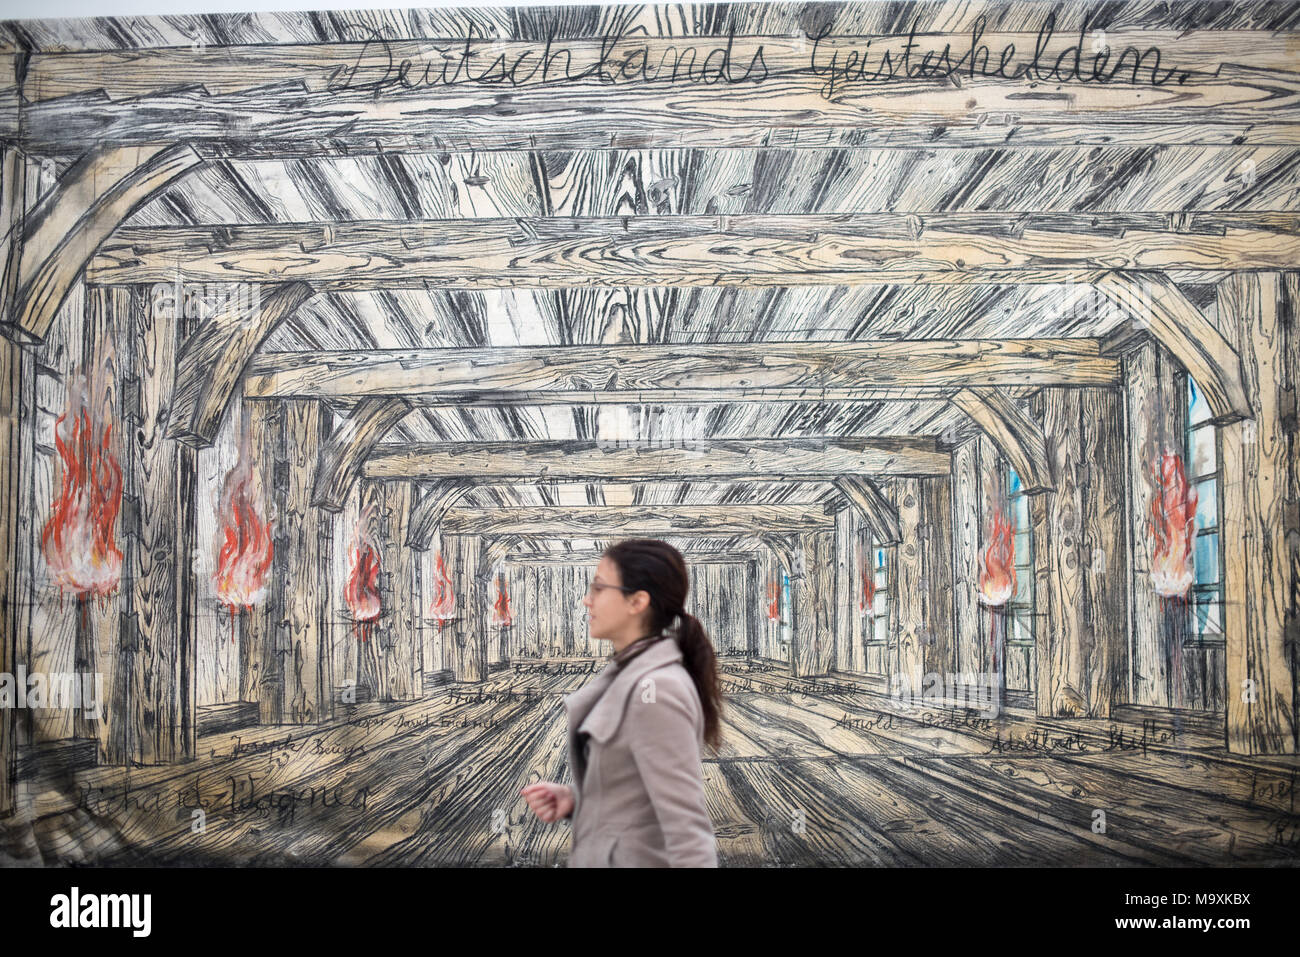 LOS ANGELES, CA - March 15, 2018: Anselm Kiefer's Deutschlands Geisteshelden (Germany's Spiritual Heroes), 1973 in The Broad Museum. - Stock Image